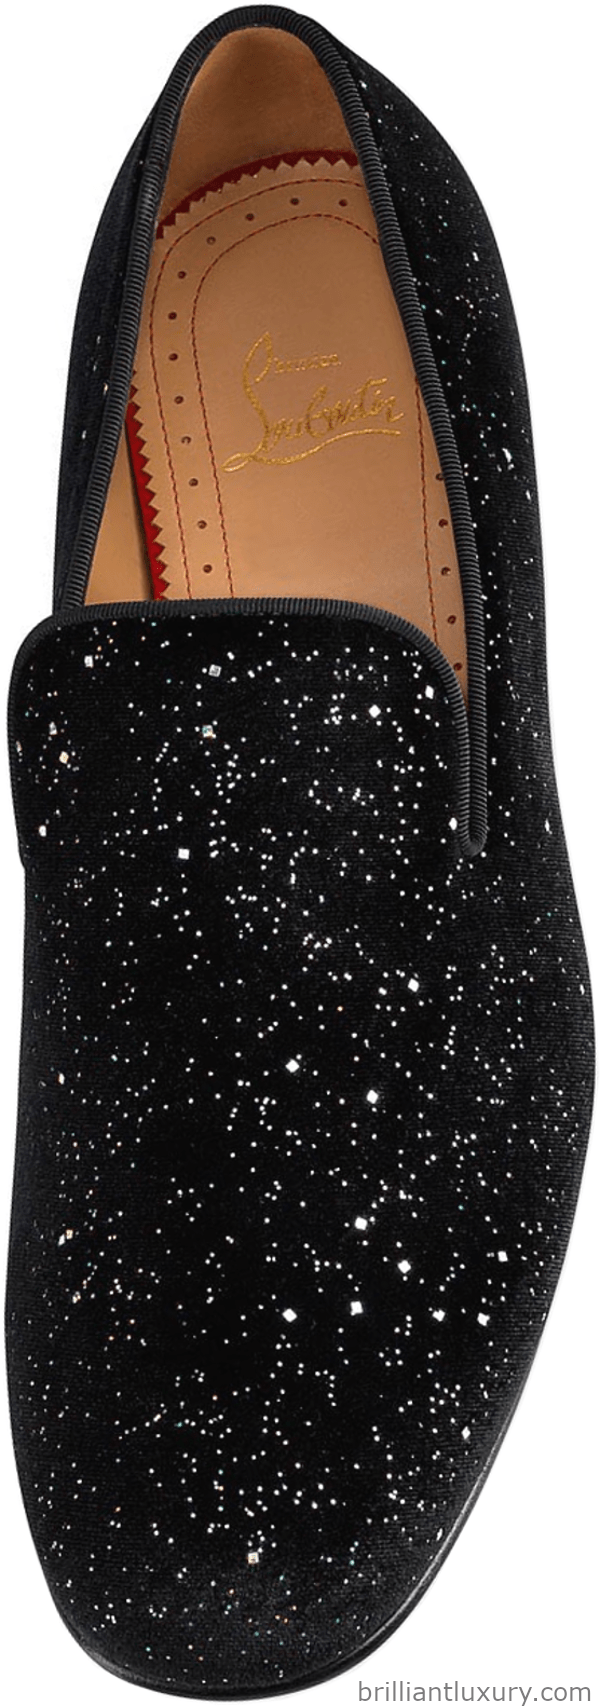 Christian Louboutin Rollerboy Galactica loafers in velvet leather covered with strass